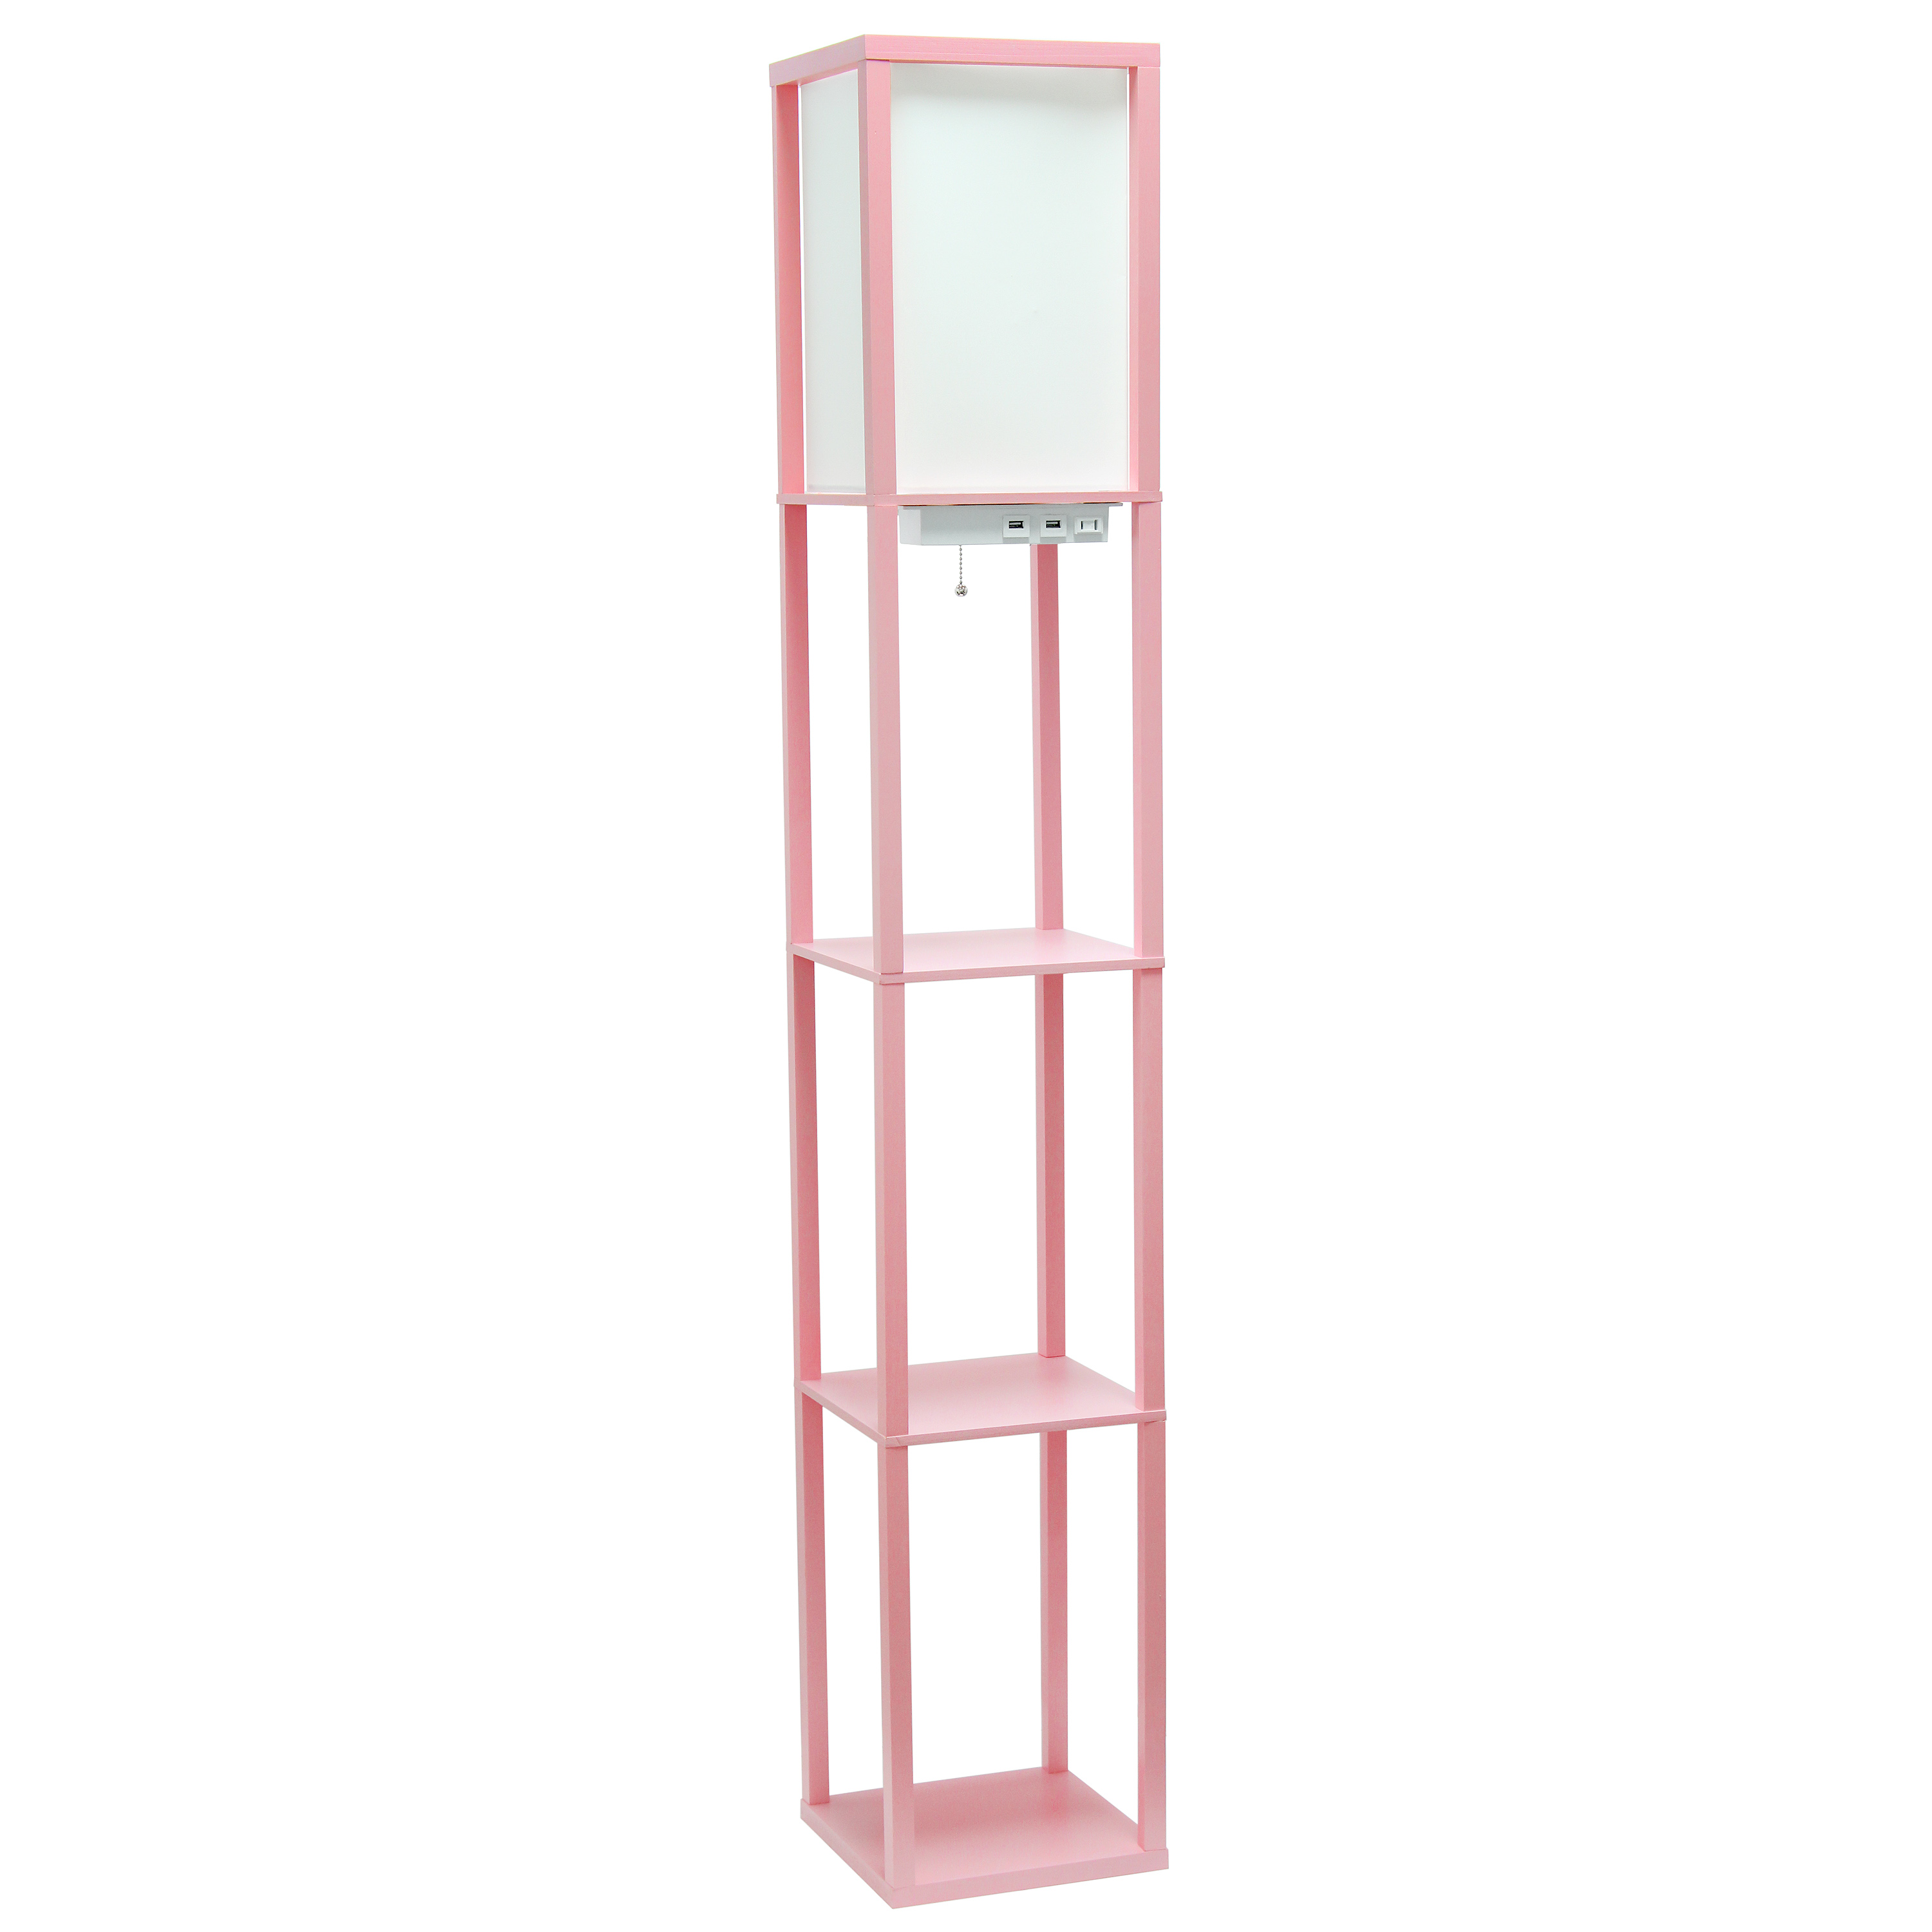 Floor Lamp Etagere Organizer Storage Shelf with 2 USB Charging Ports, 1 Charging Outlet and Linen Shade, Light Pink